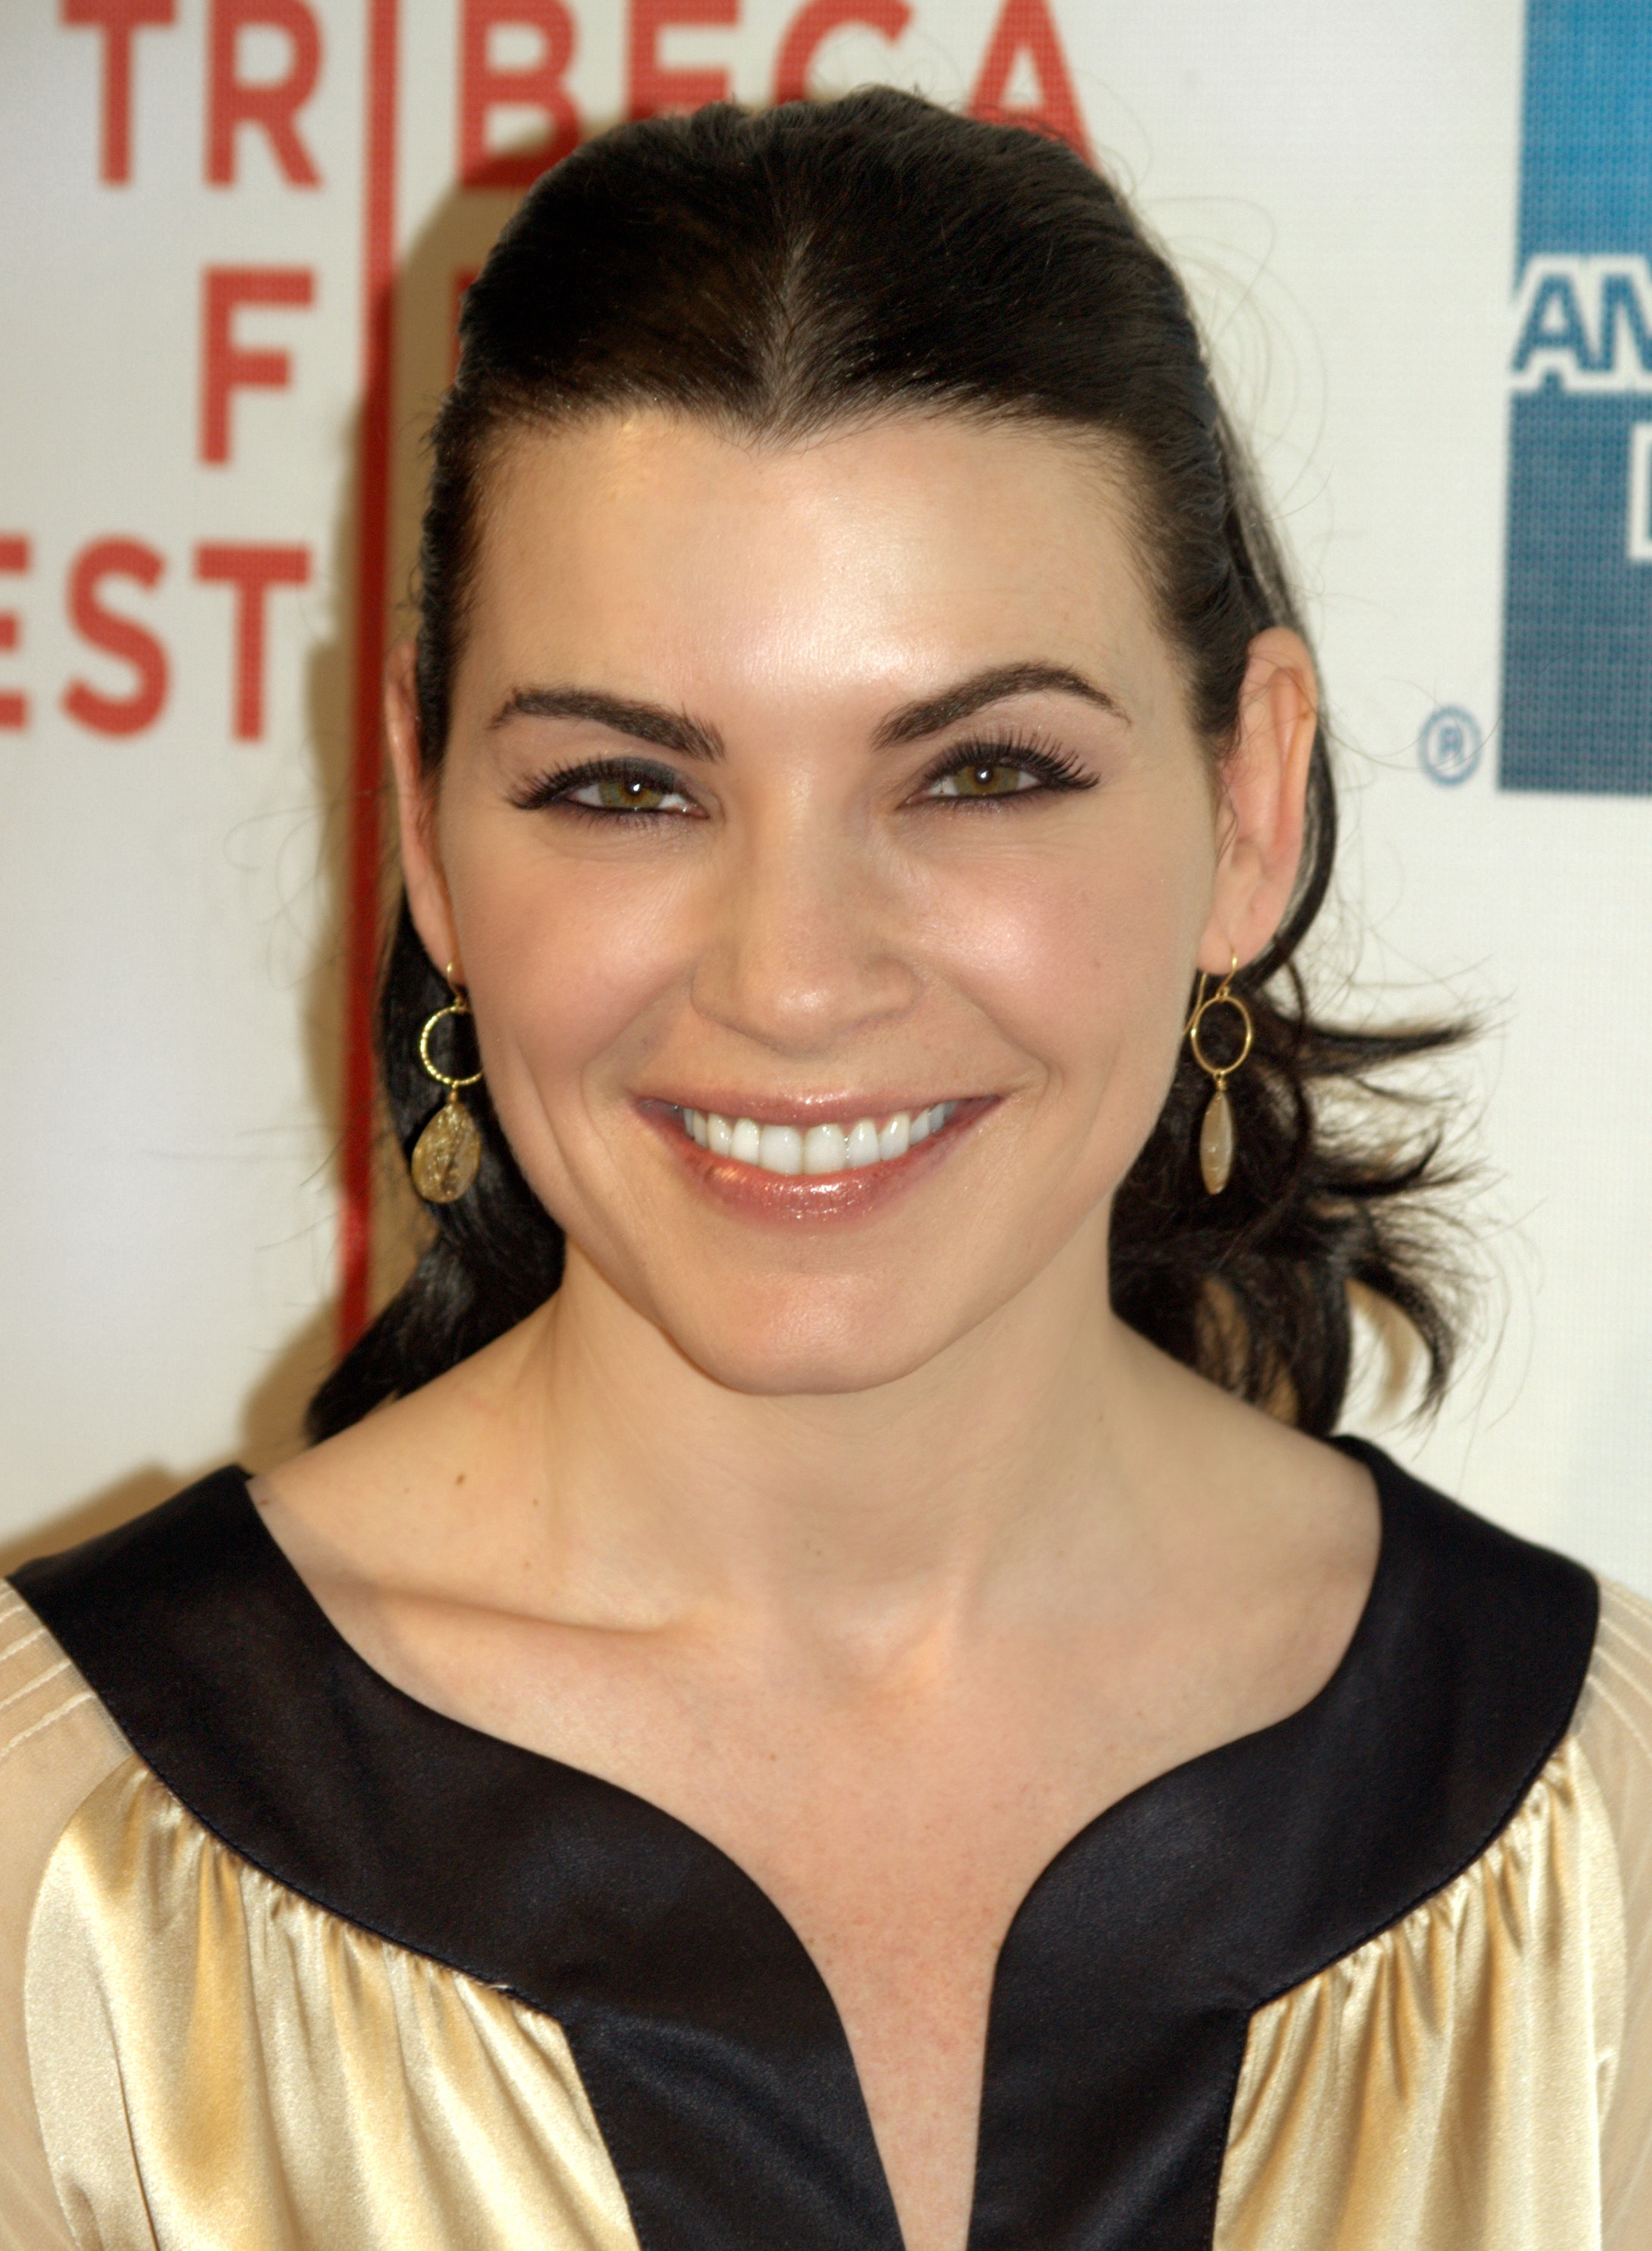 Julianna Margulies earned a 0.18 million dollar salary - leaving the net worth at 22 million in 2018